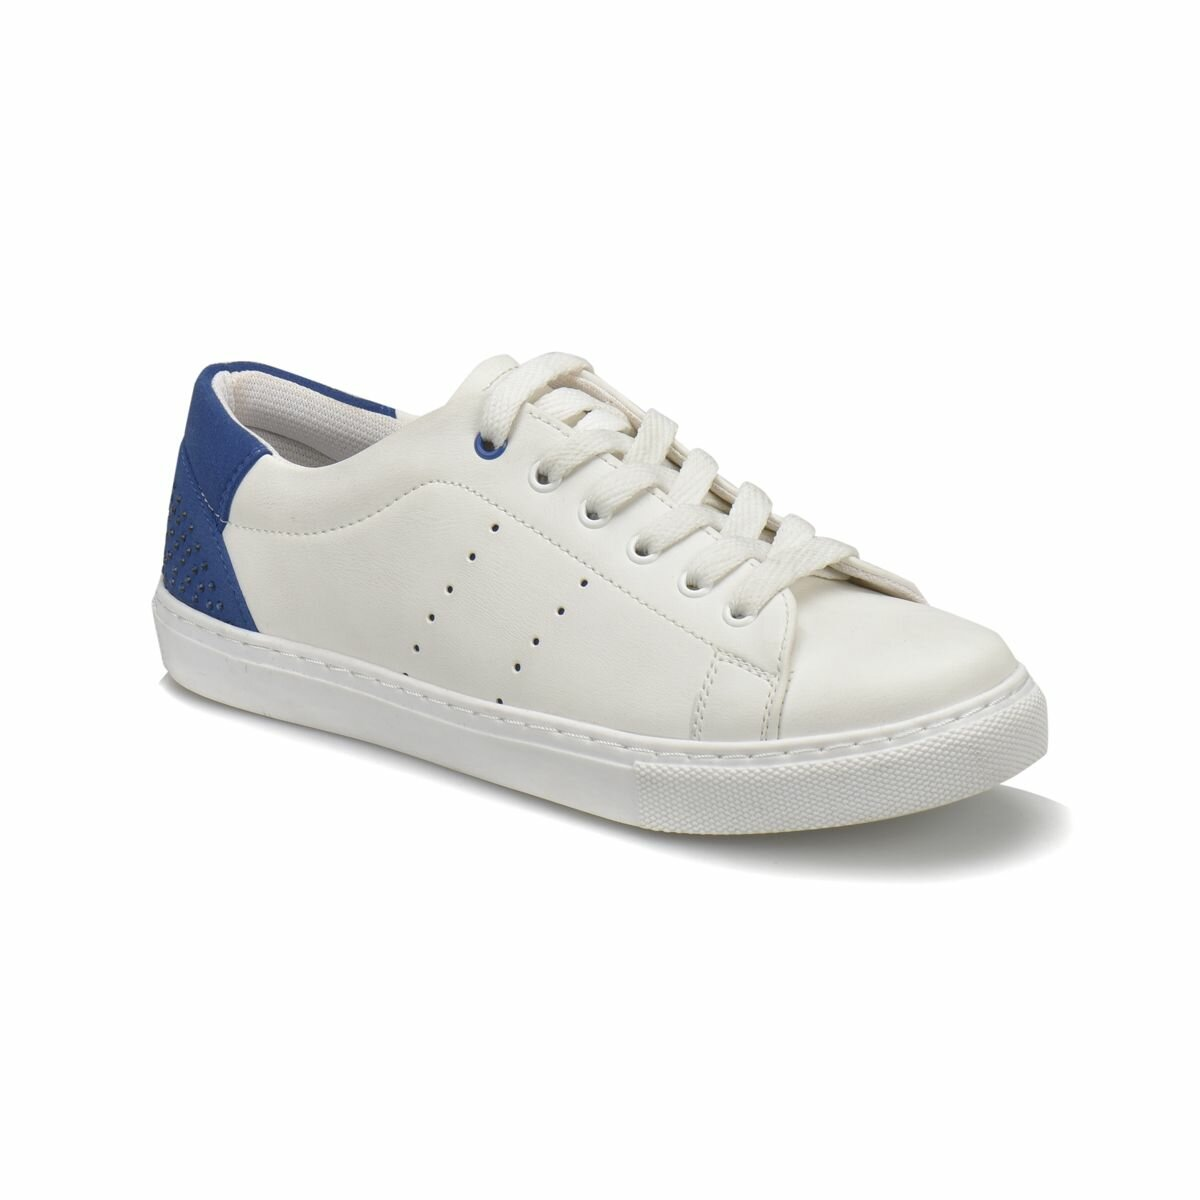 FLO U2207-18S Blue Women 'S Sneaker Shoes Art Bella